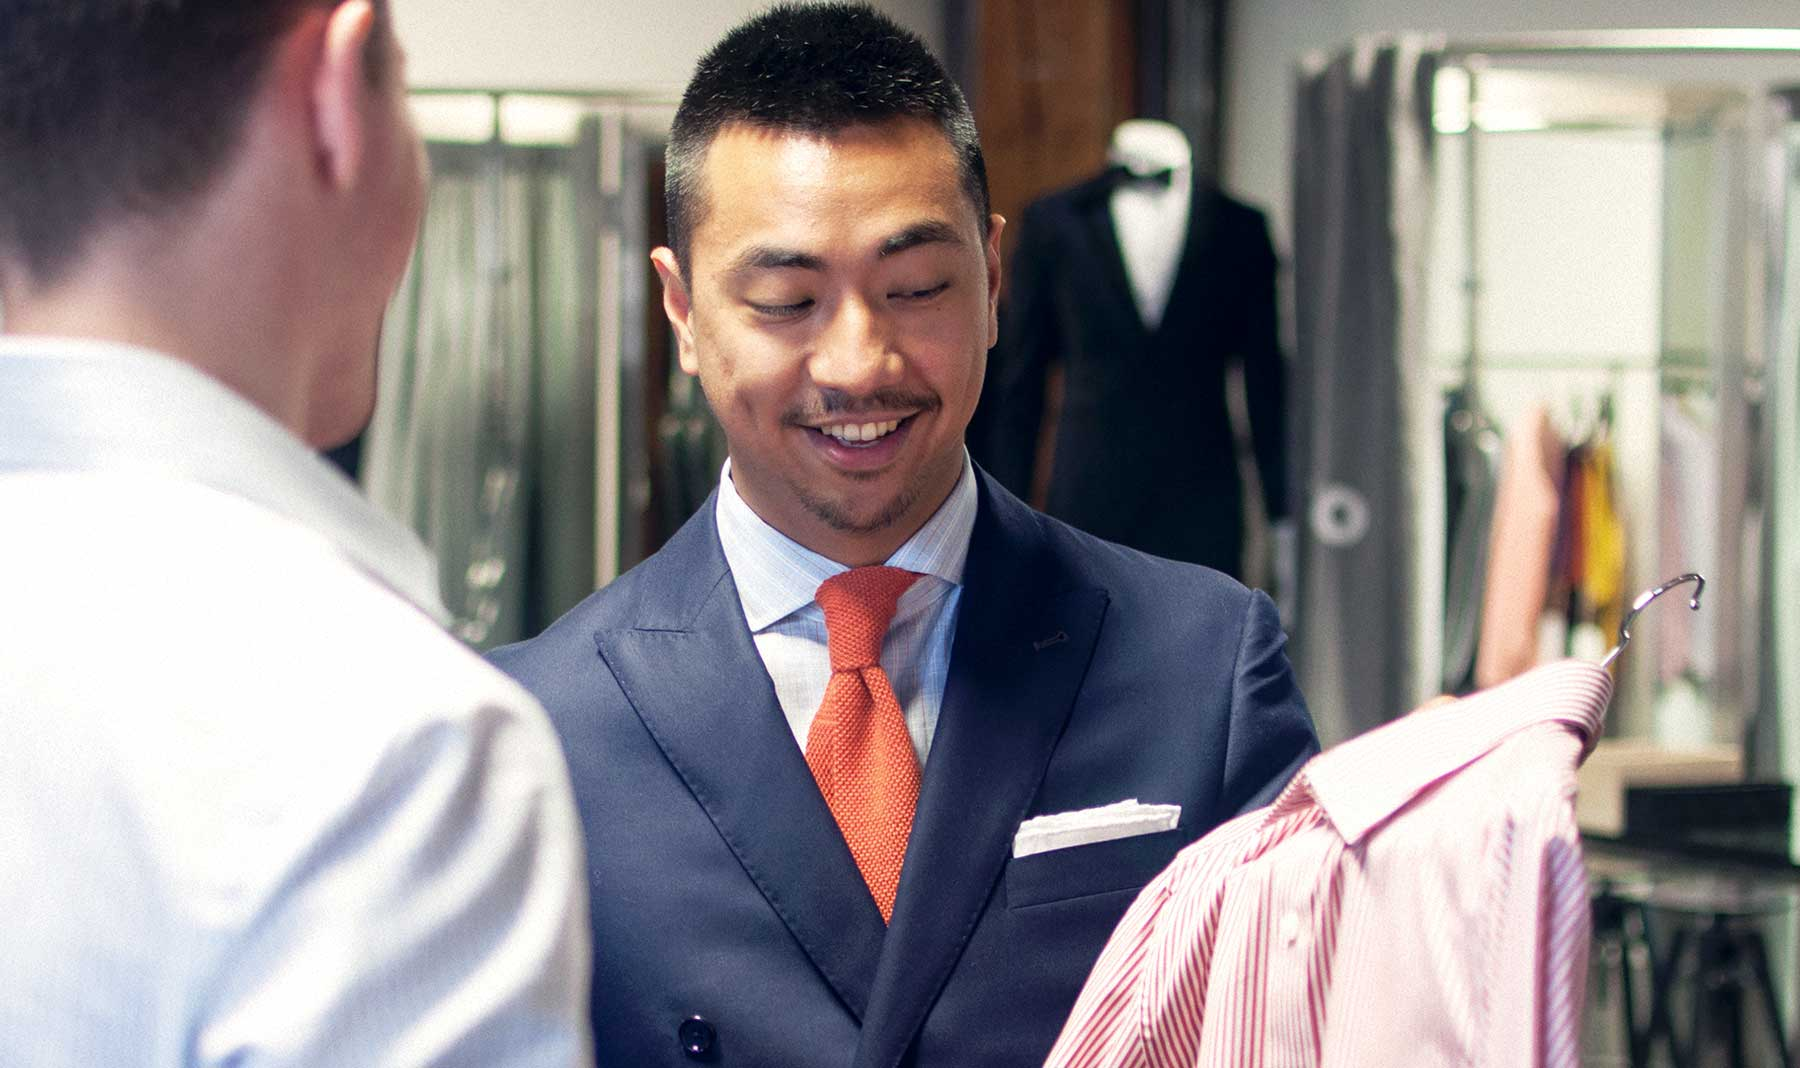 Meet Jose! Our Vancouver Showroom Manager and a real G